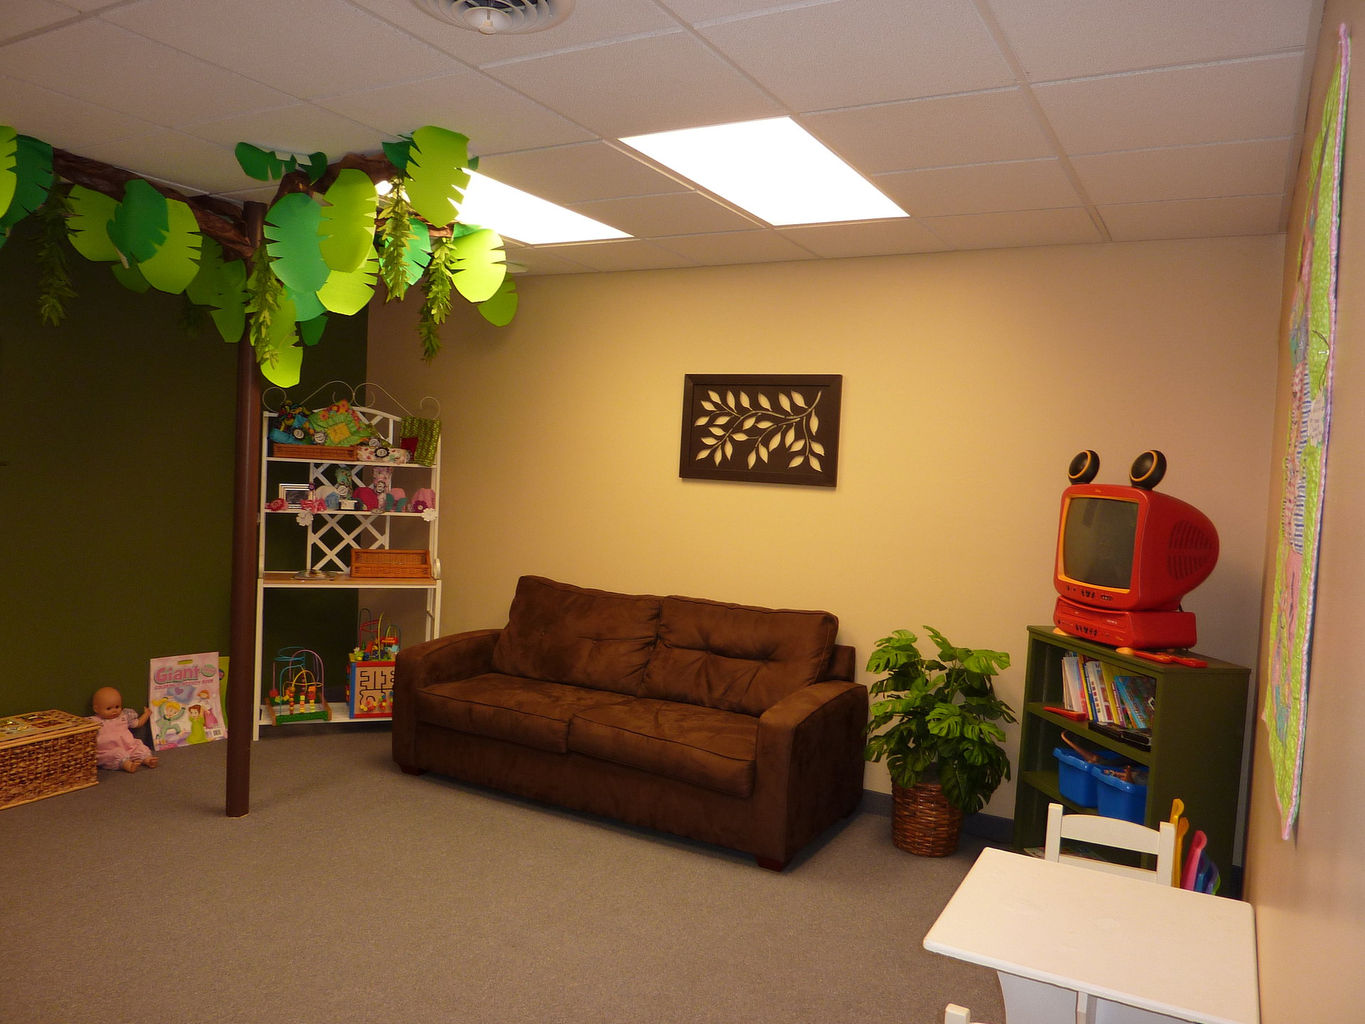 Kids and Family waiting room